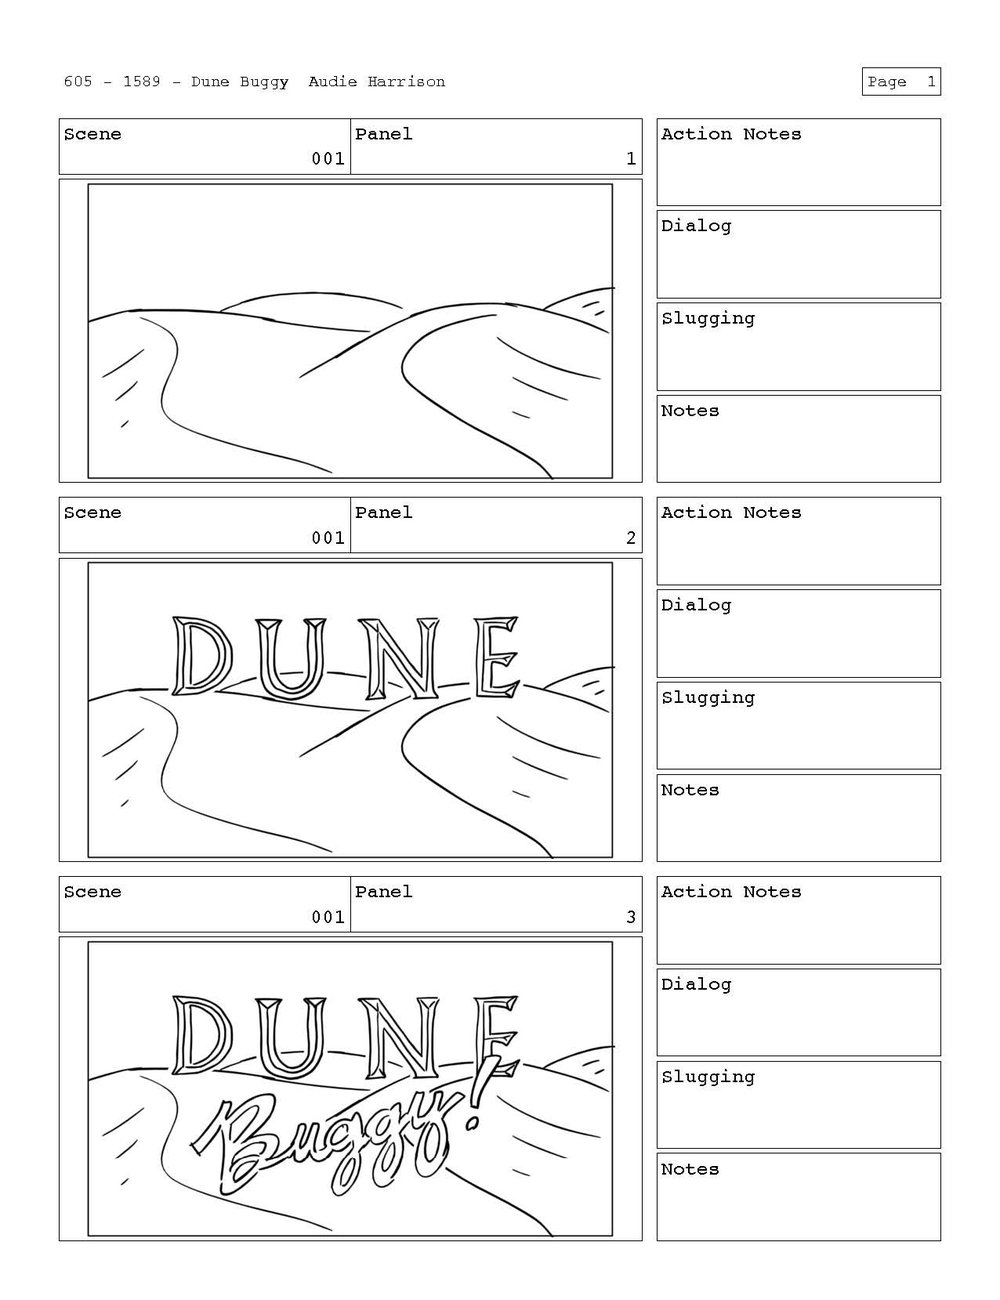 Dune_Buggy_Page_02.jpg